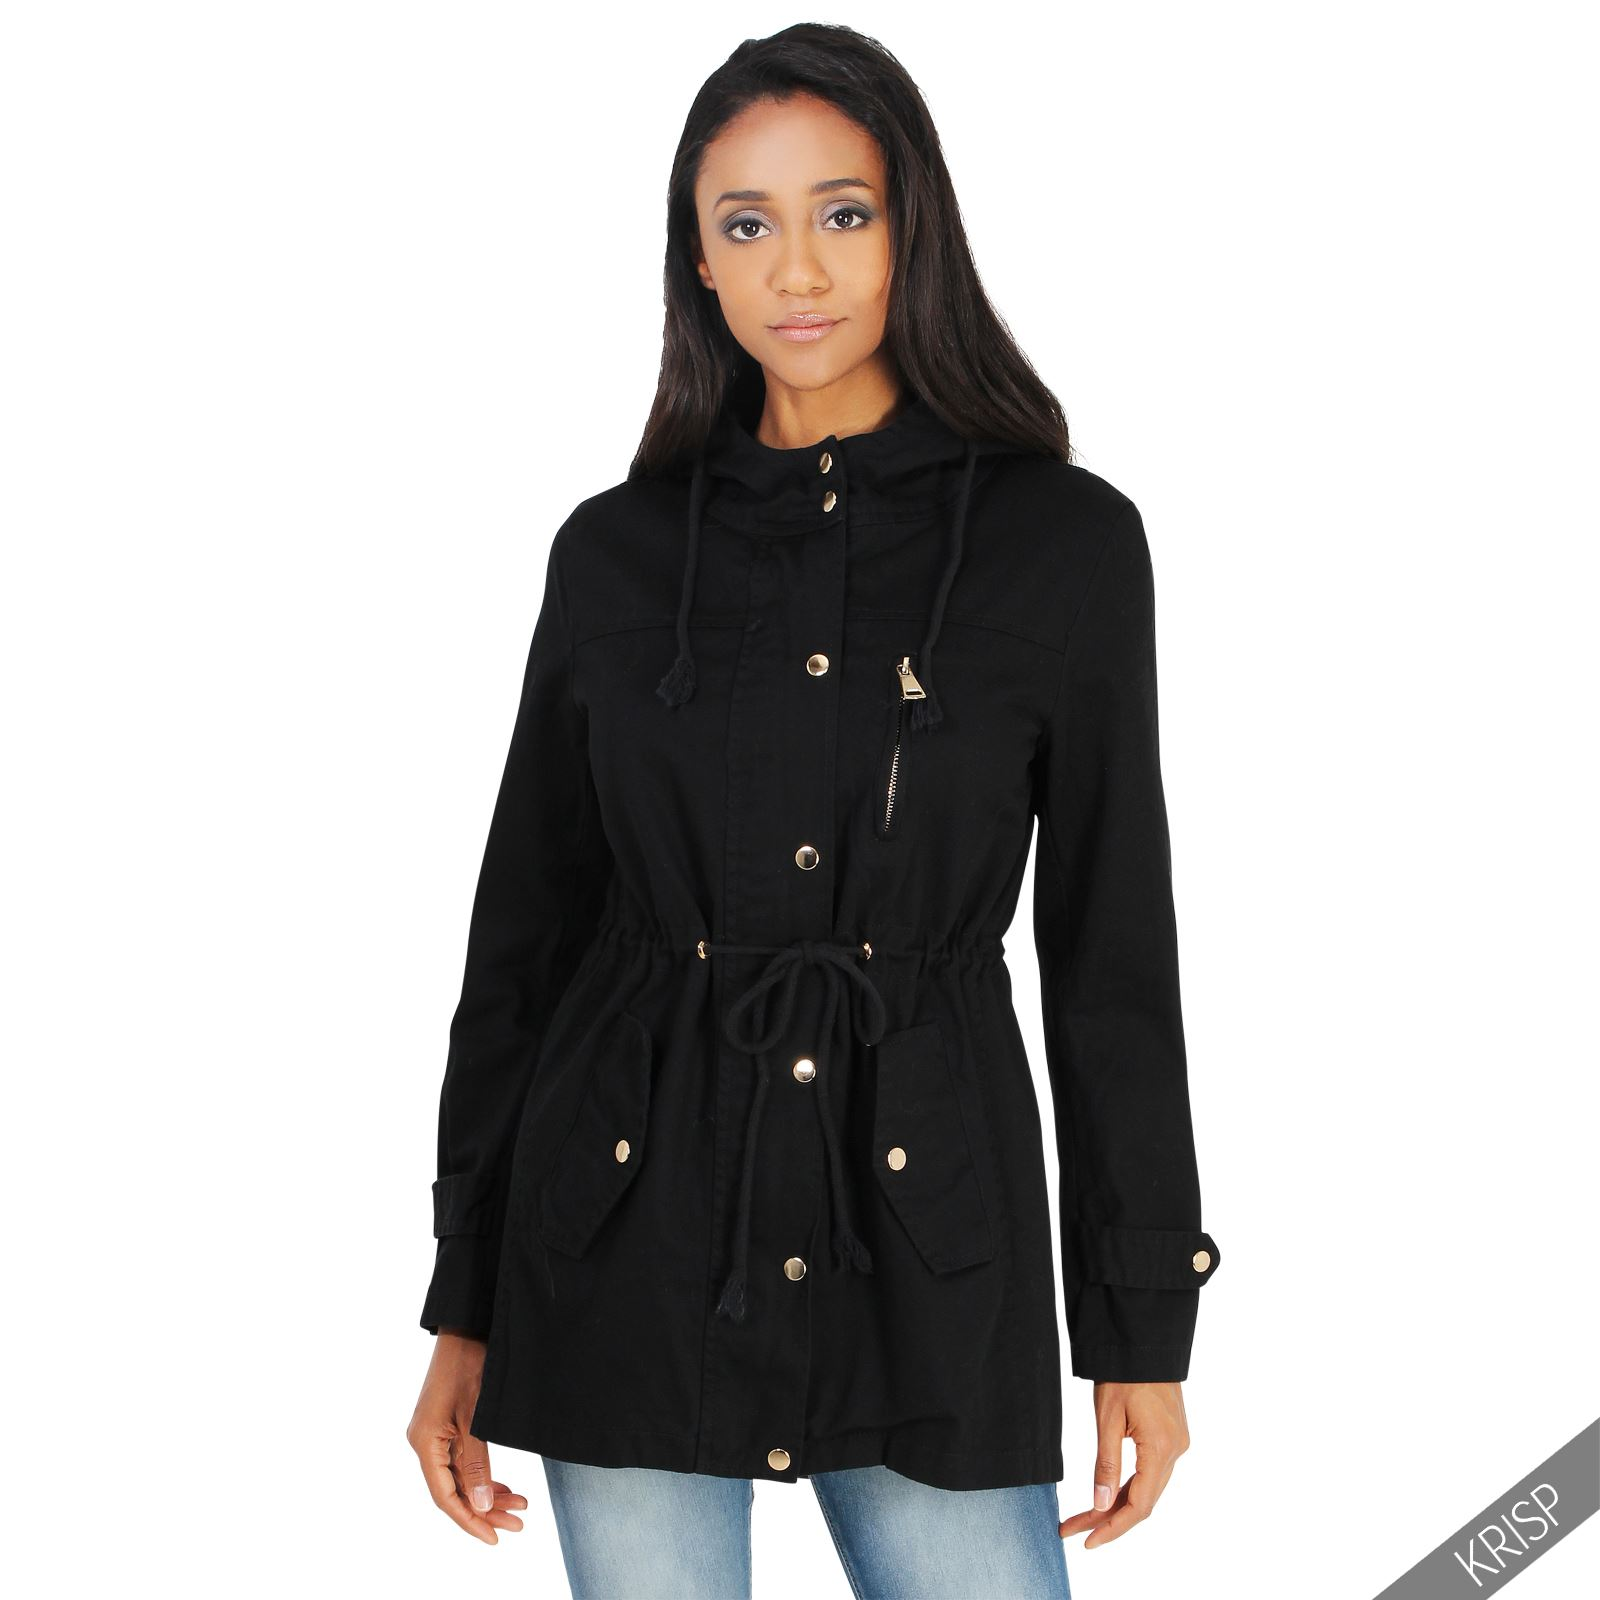 Long Coat Womens Photo Album - Watch Out, There's a Clothes About